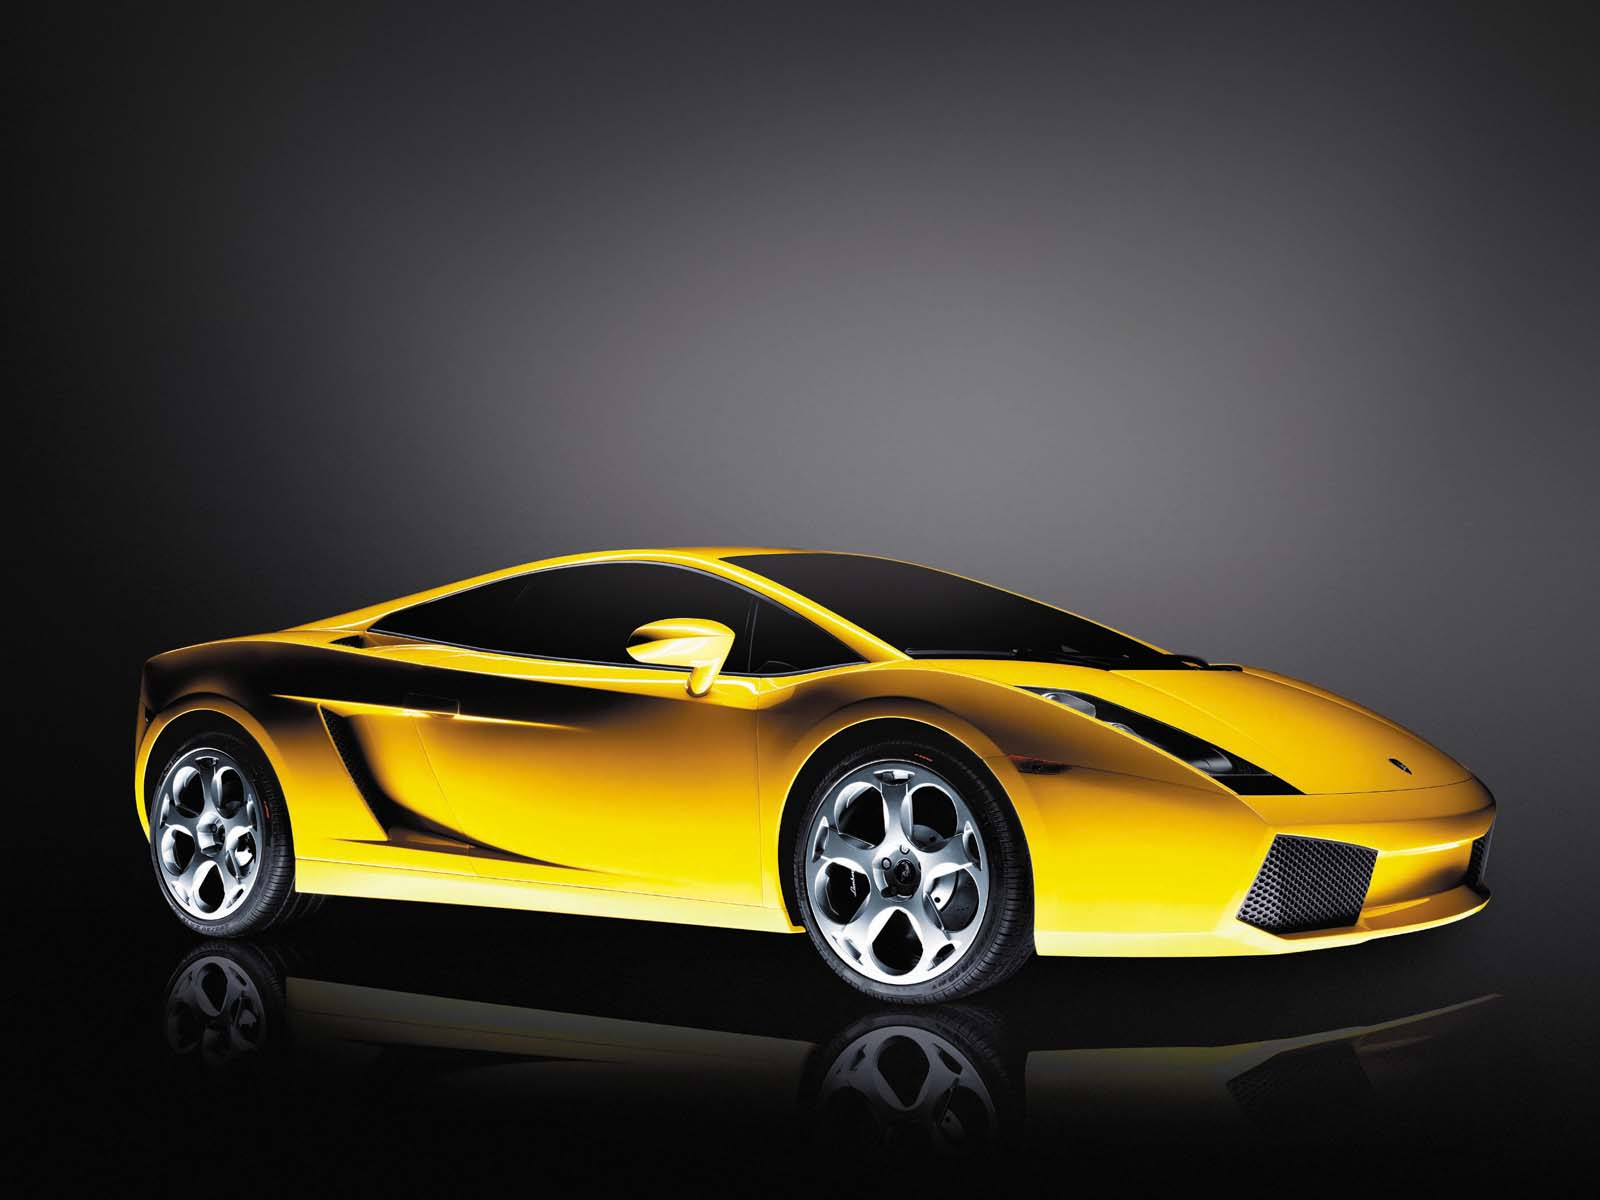 lamborghini gallardo cool car wallpapers. Black Bedroom Furniture Sets. Home Design Ideas